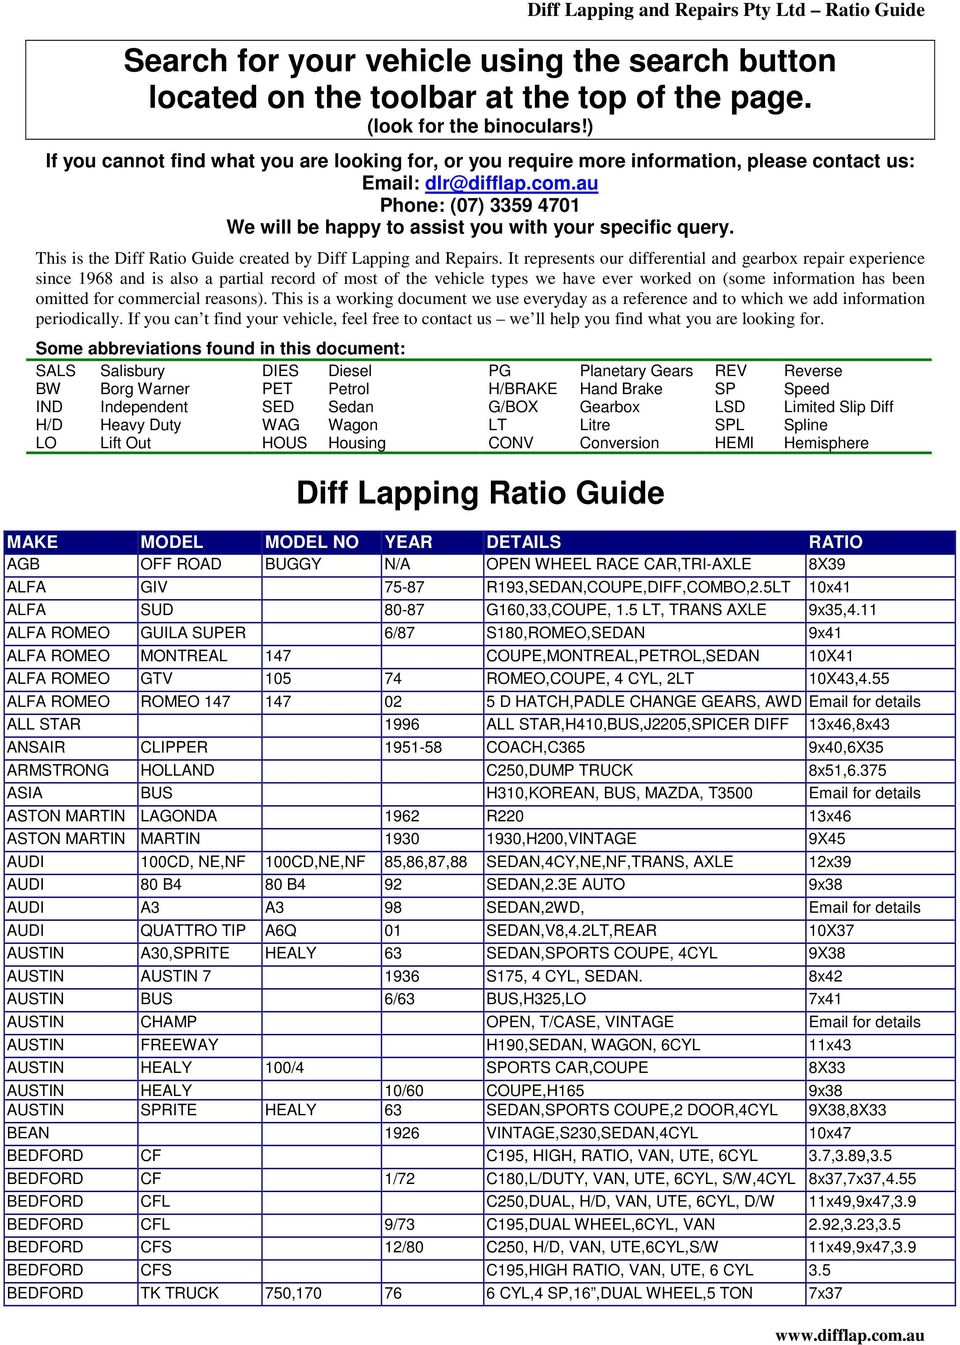 Diff Lapping Ratio Guide MAKE MODEL MODEL NO YEAR DETAILS